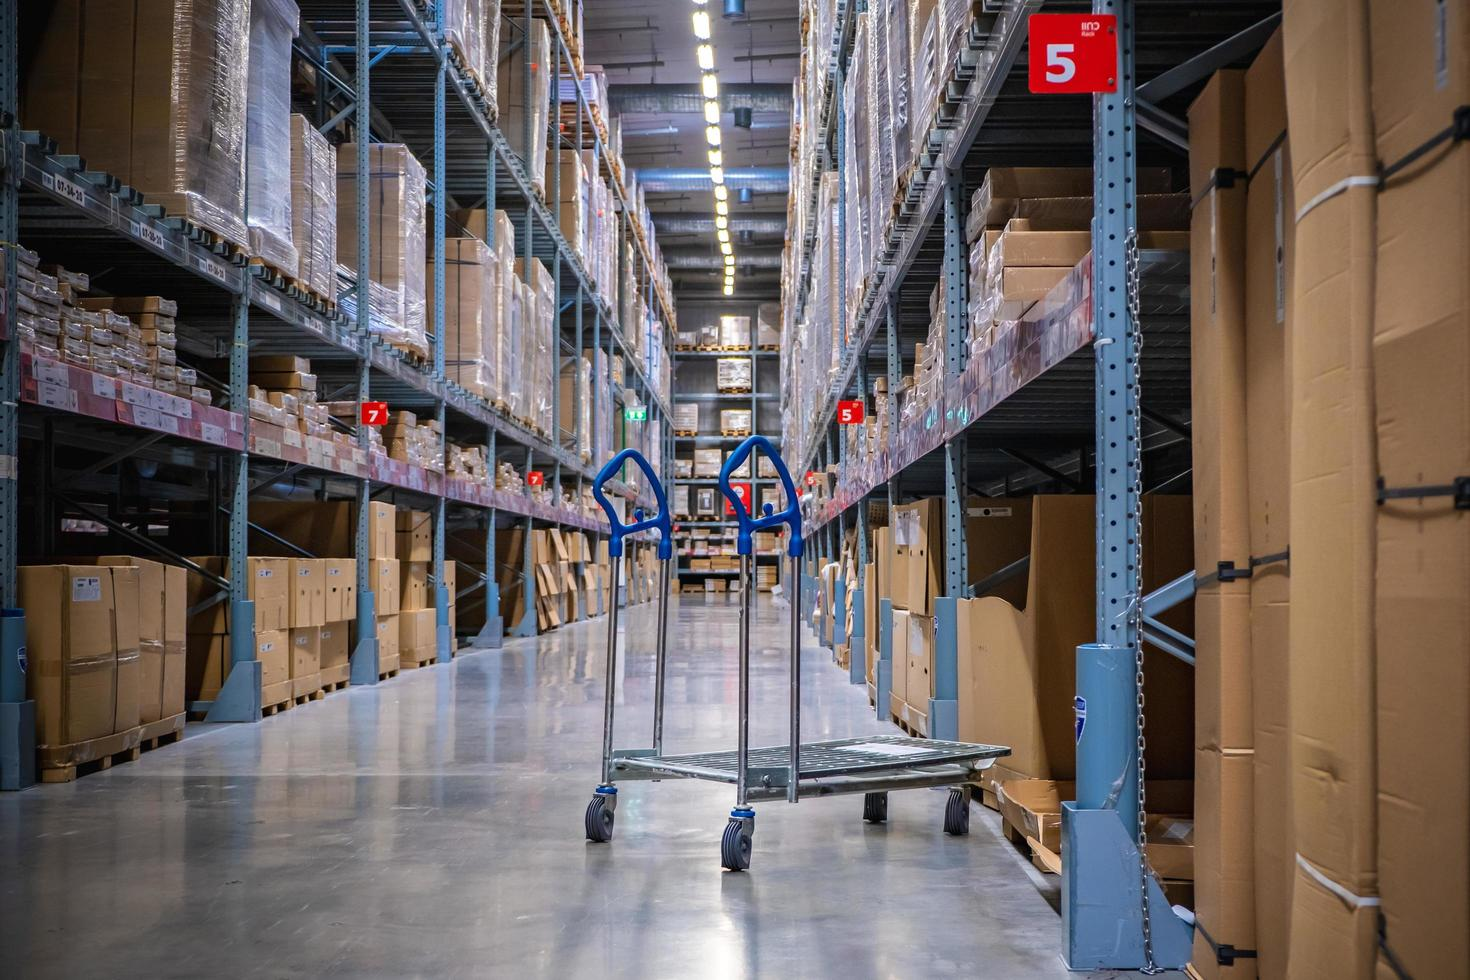 A cart in warehouse aisle in an IKEA store photo